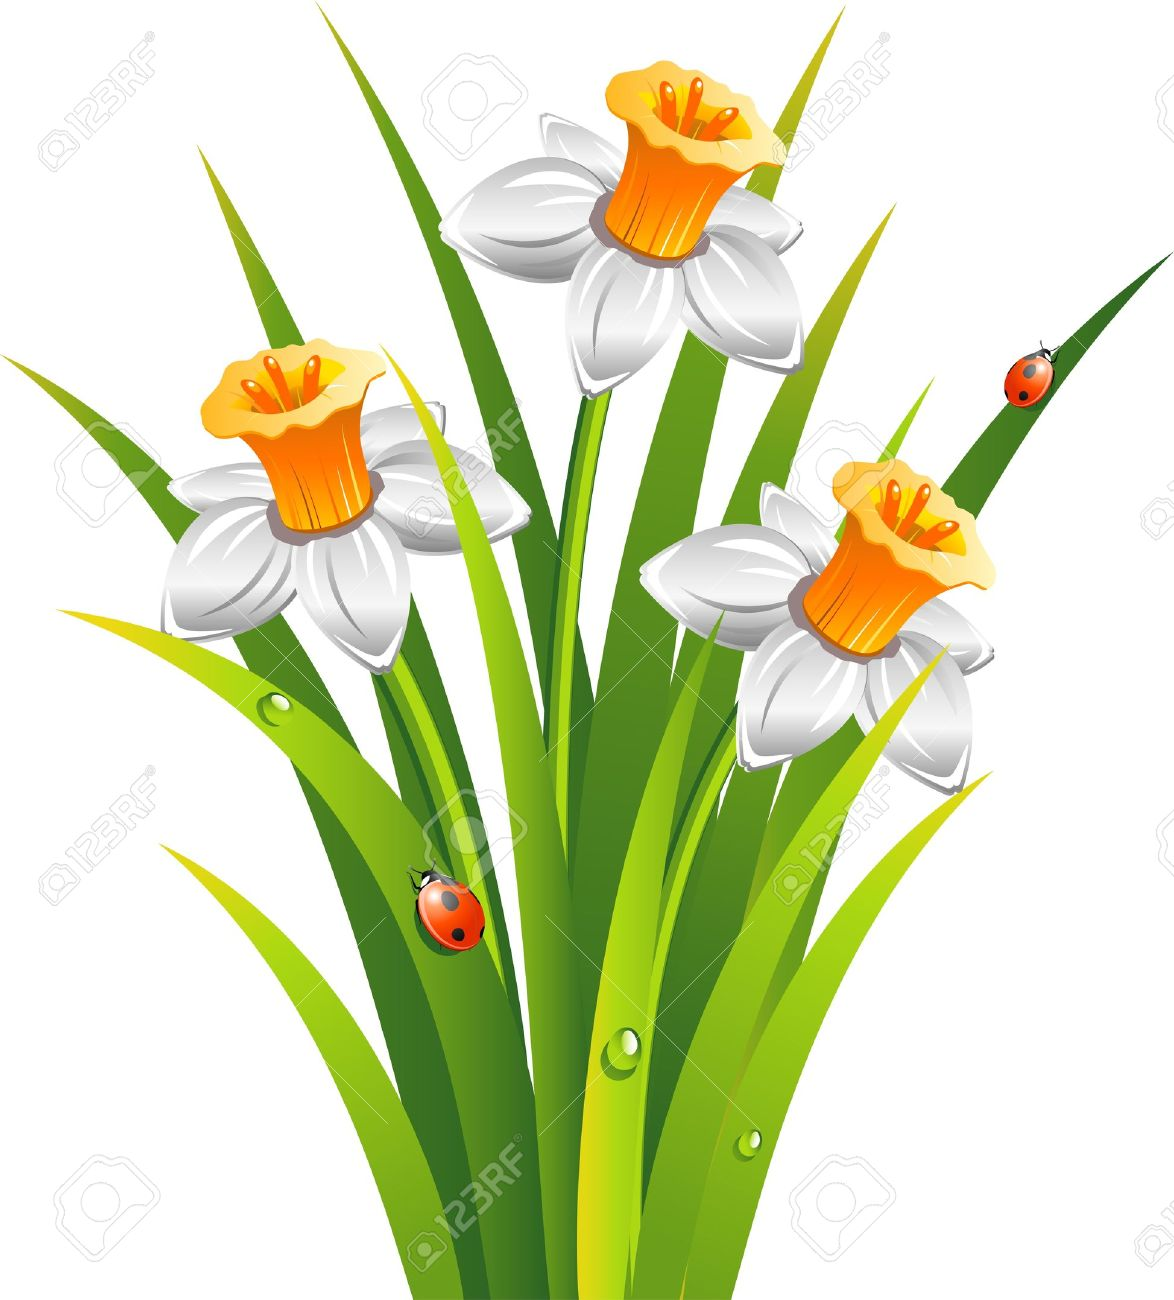 1 312 daffodil drawing stock vector illustration and royalty free